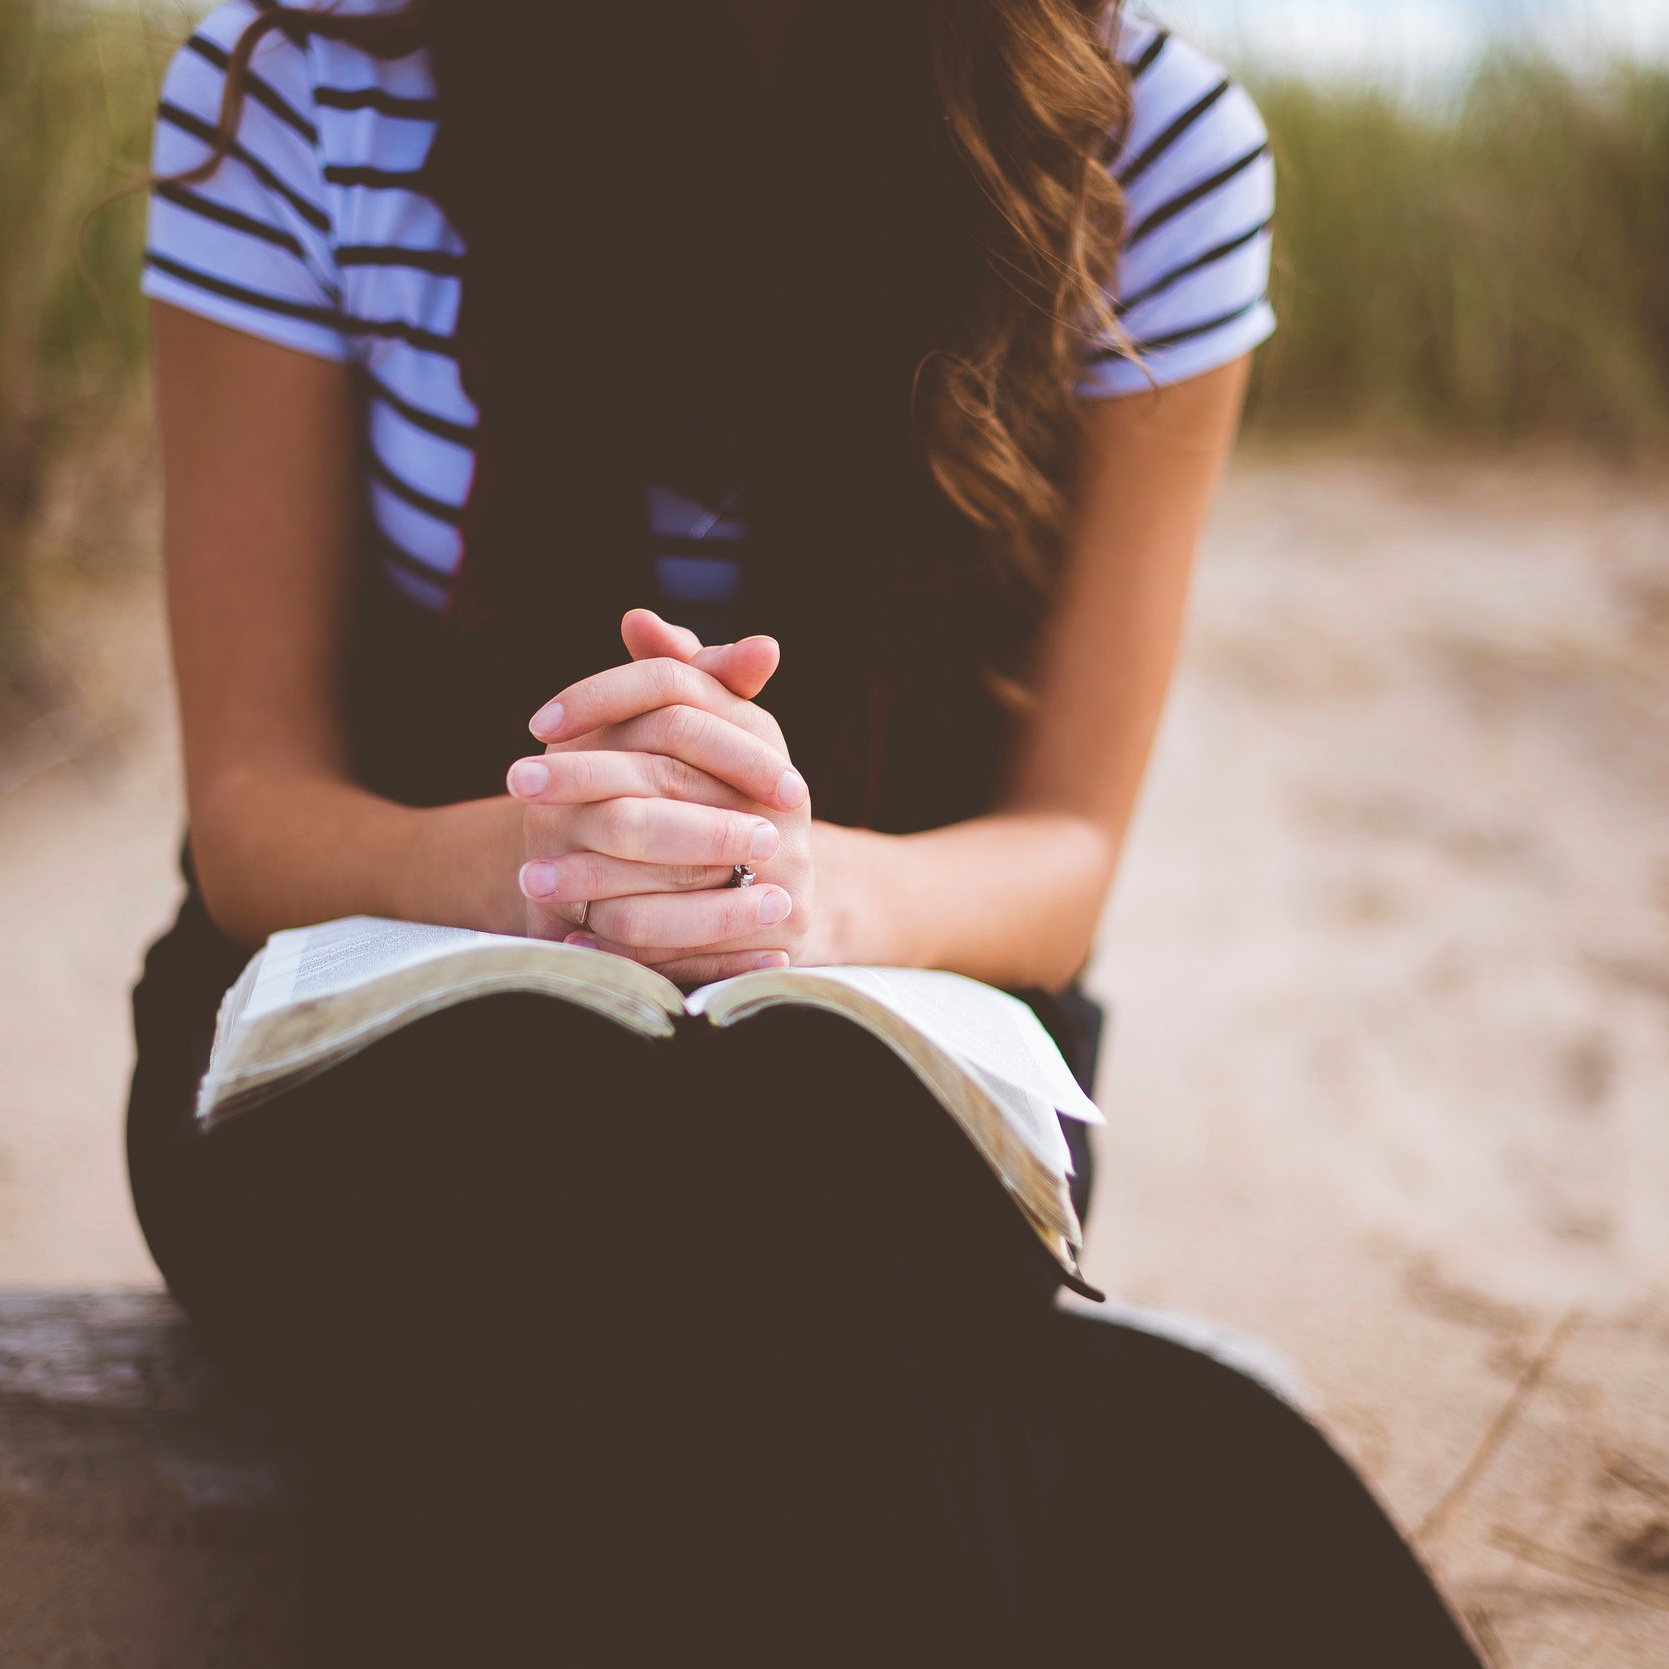 Women's Prayer Group - The topic of this group will be prayer in general. I would like to pray for the needs of the church and members.